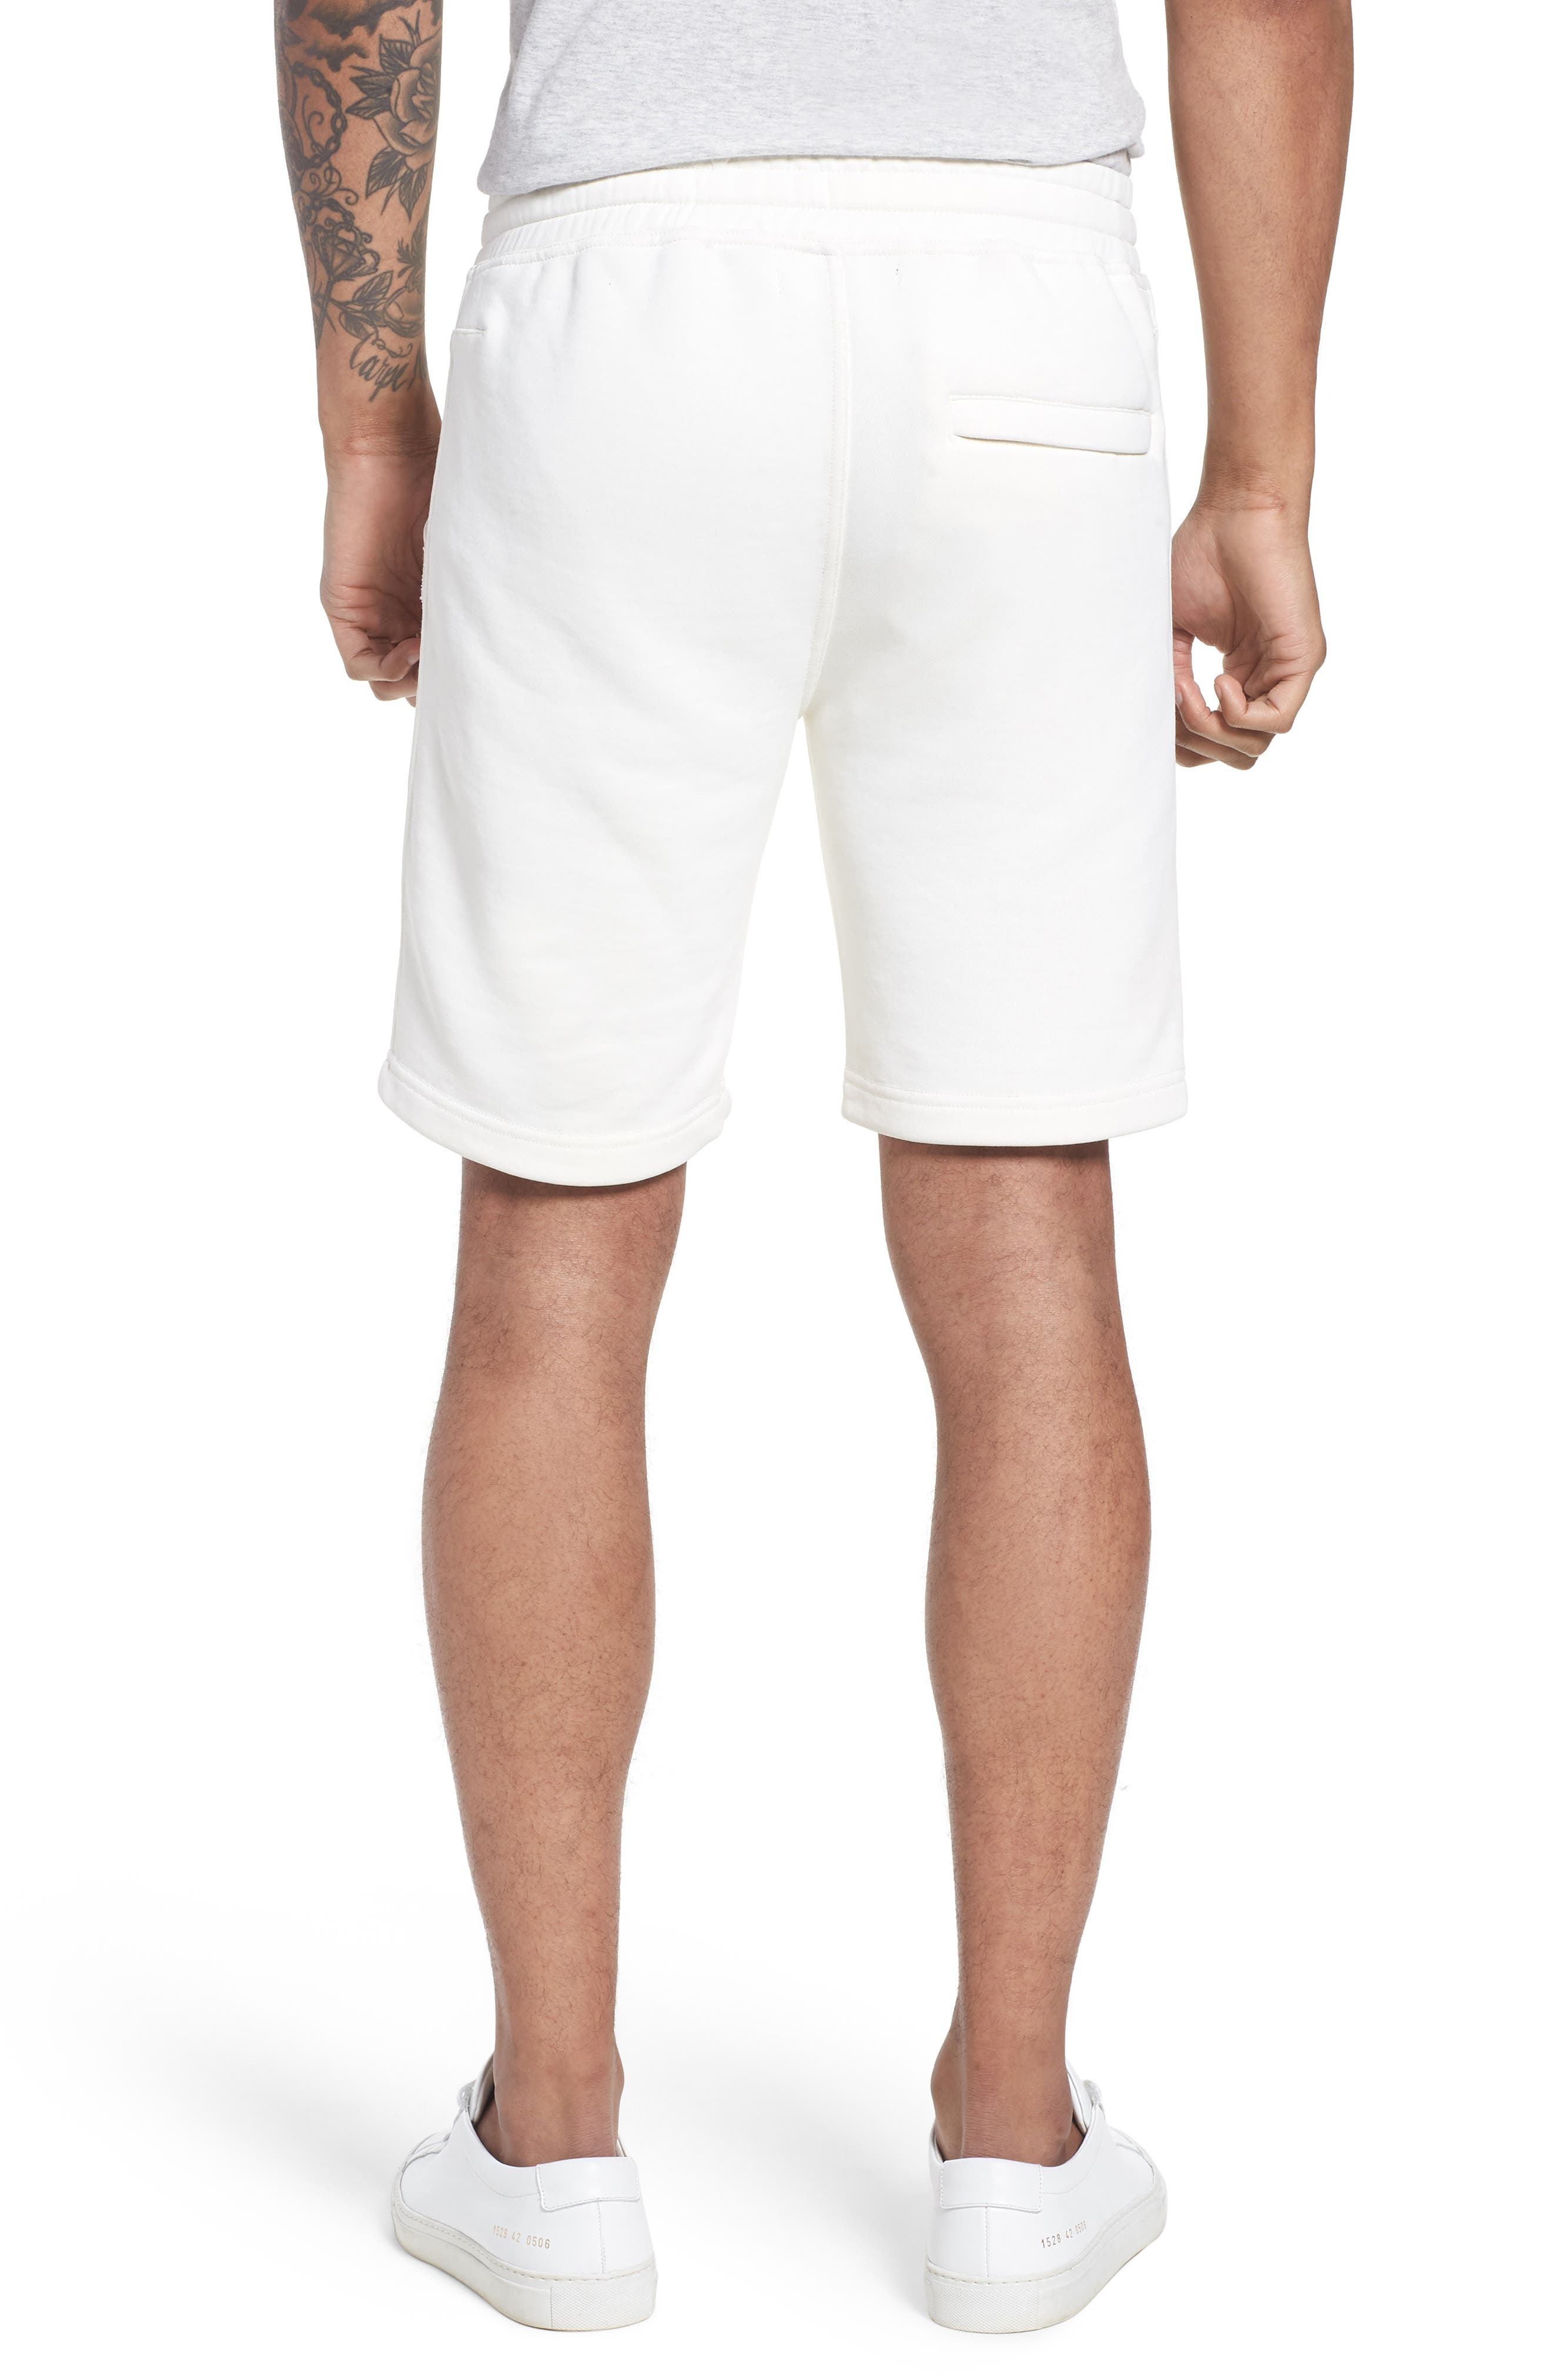 Lux French Terry Shorts,                             Alternate thumbnail 2, color,                             250